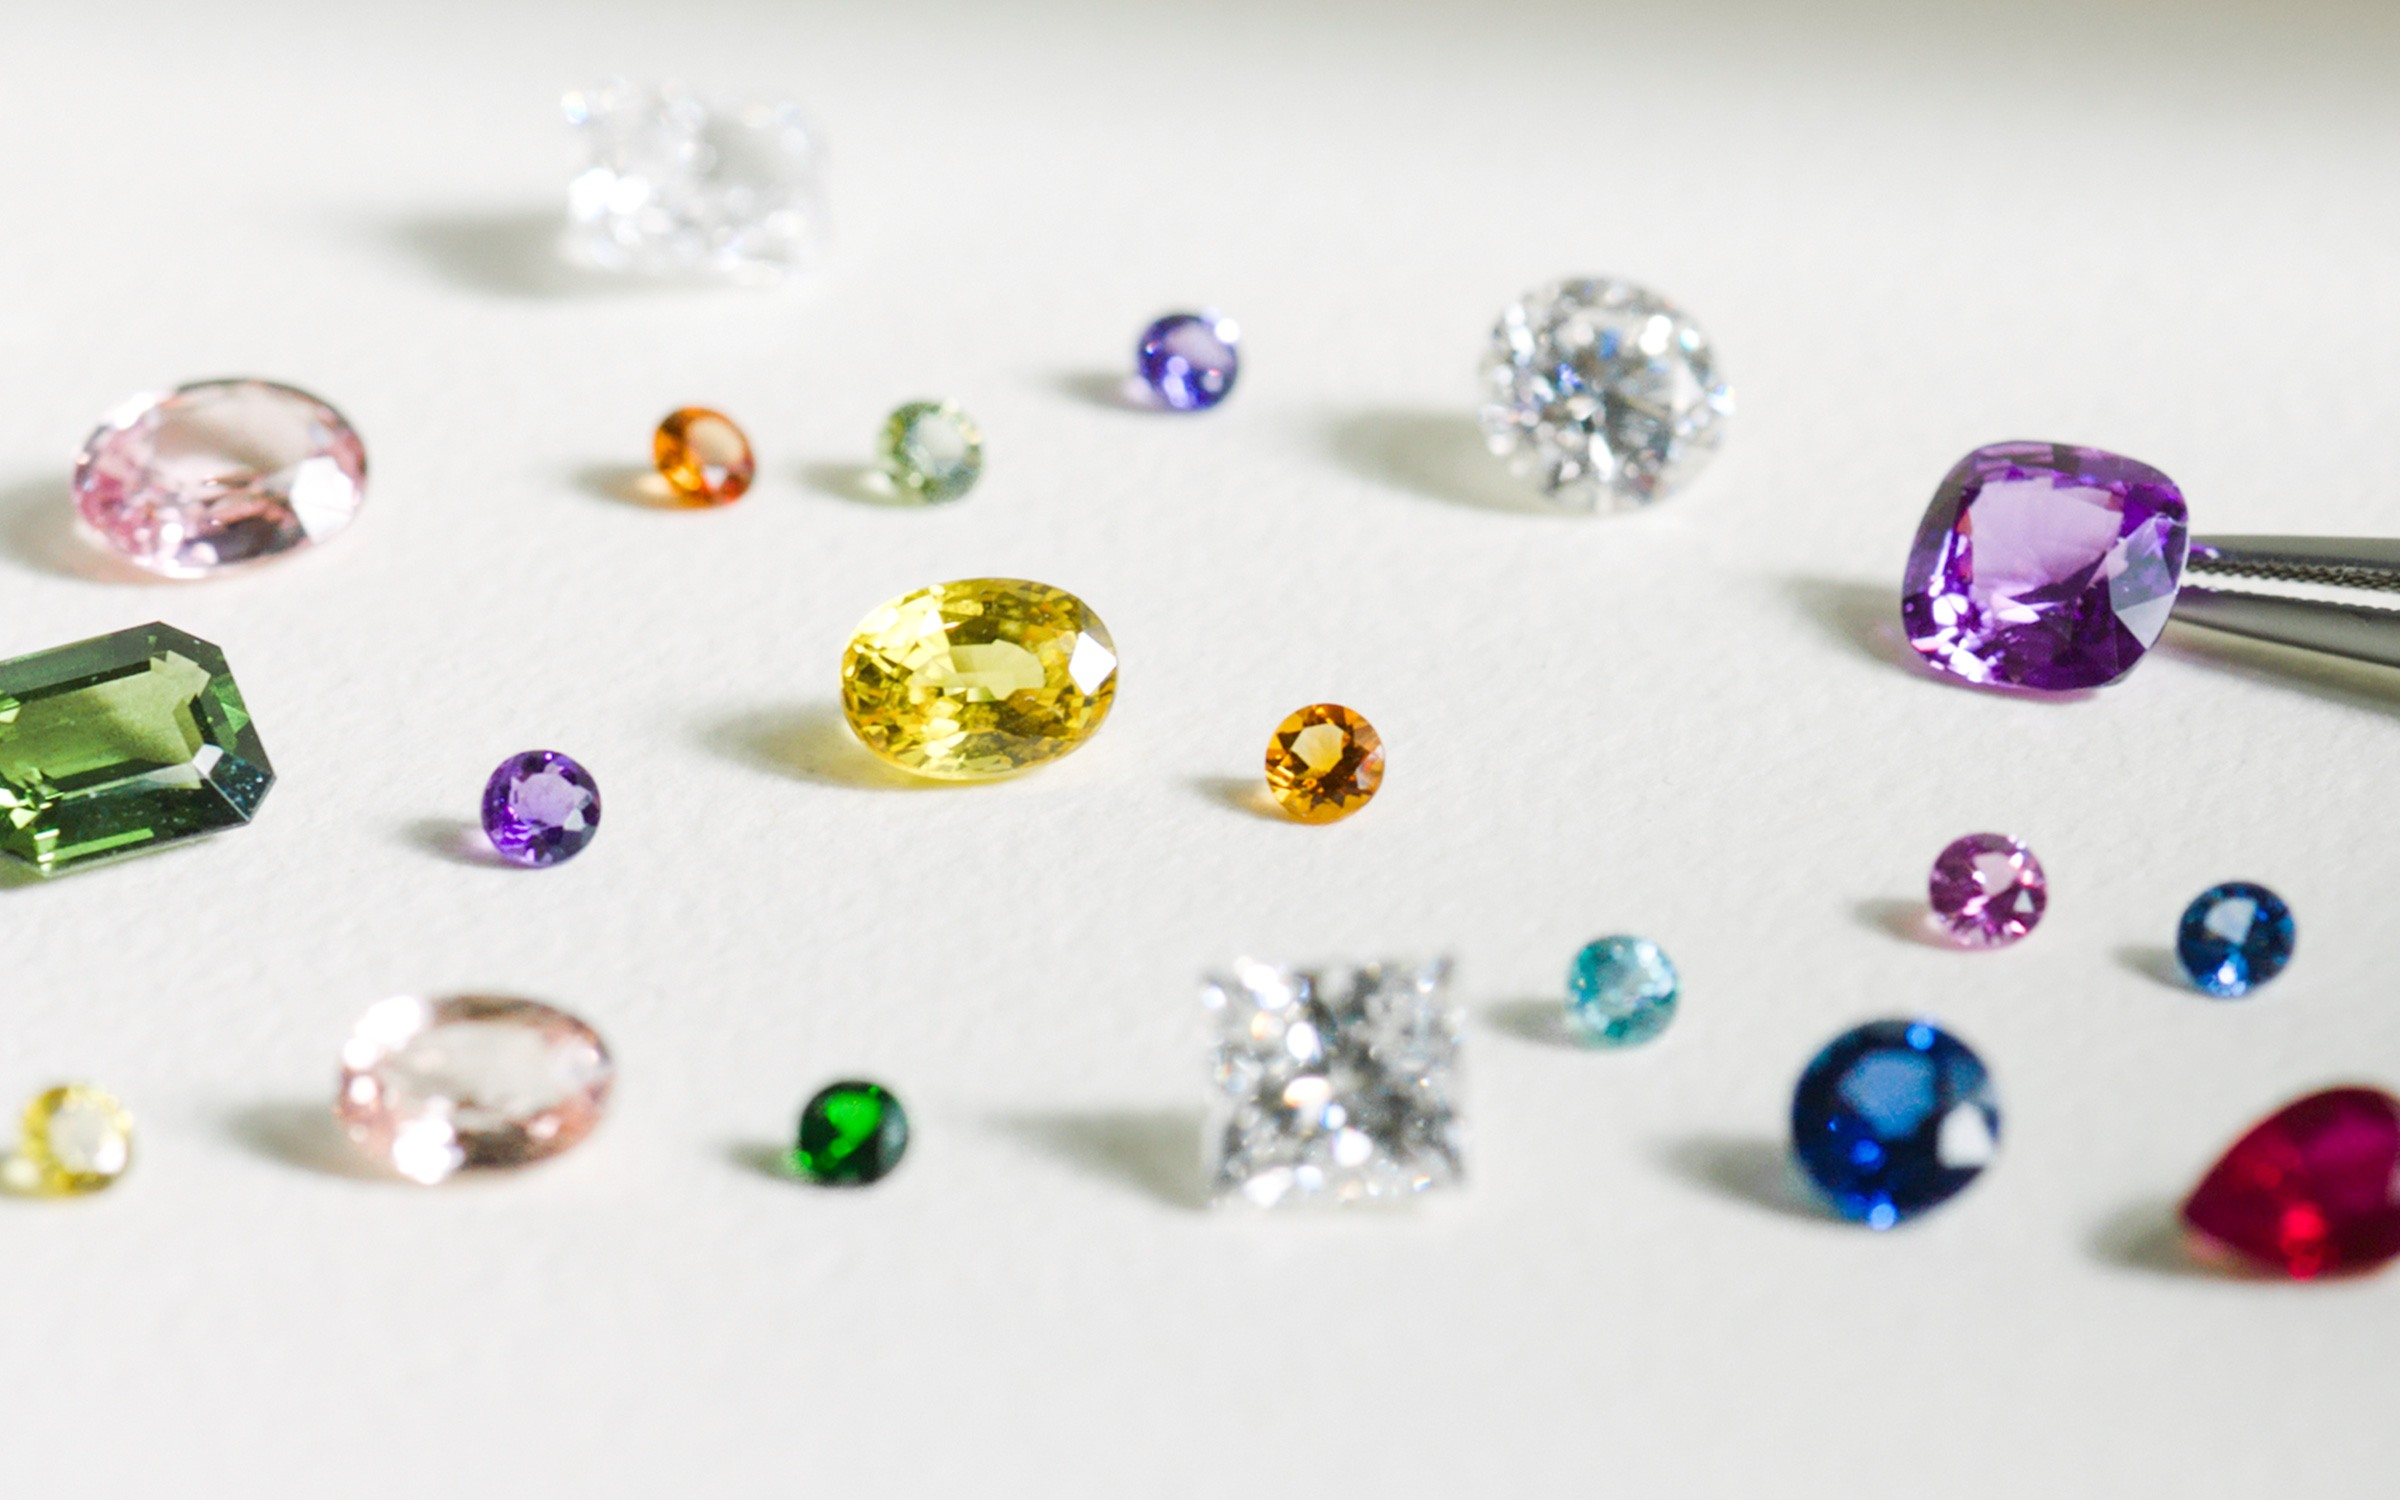 Loose diamonds and gemstones.